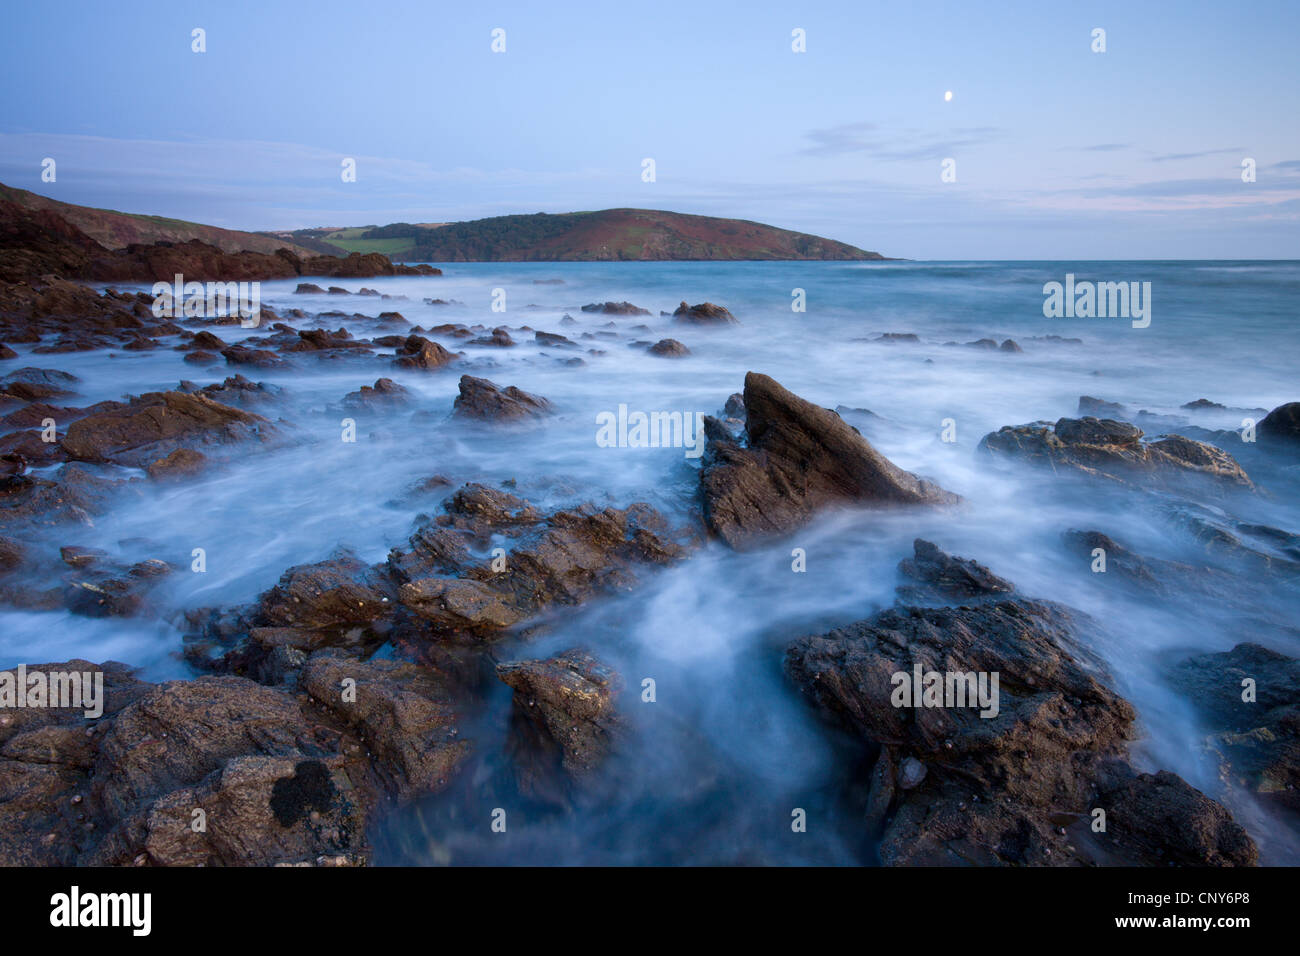 Incoming tide swirls around the rocky shores of Wembury Bay in South Devon, England - Stock Image